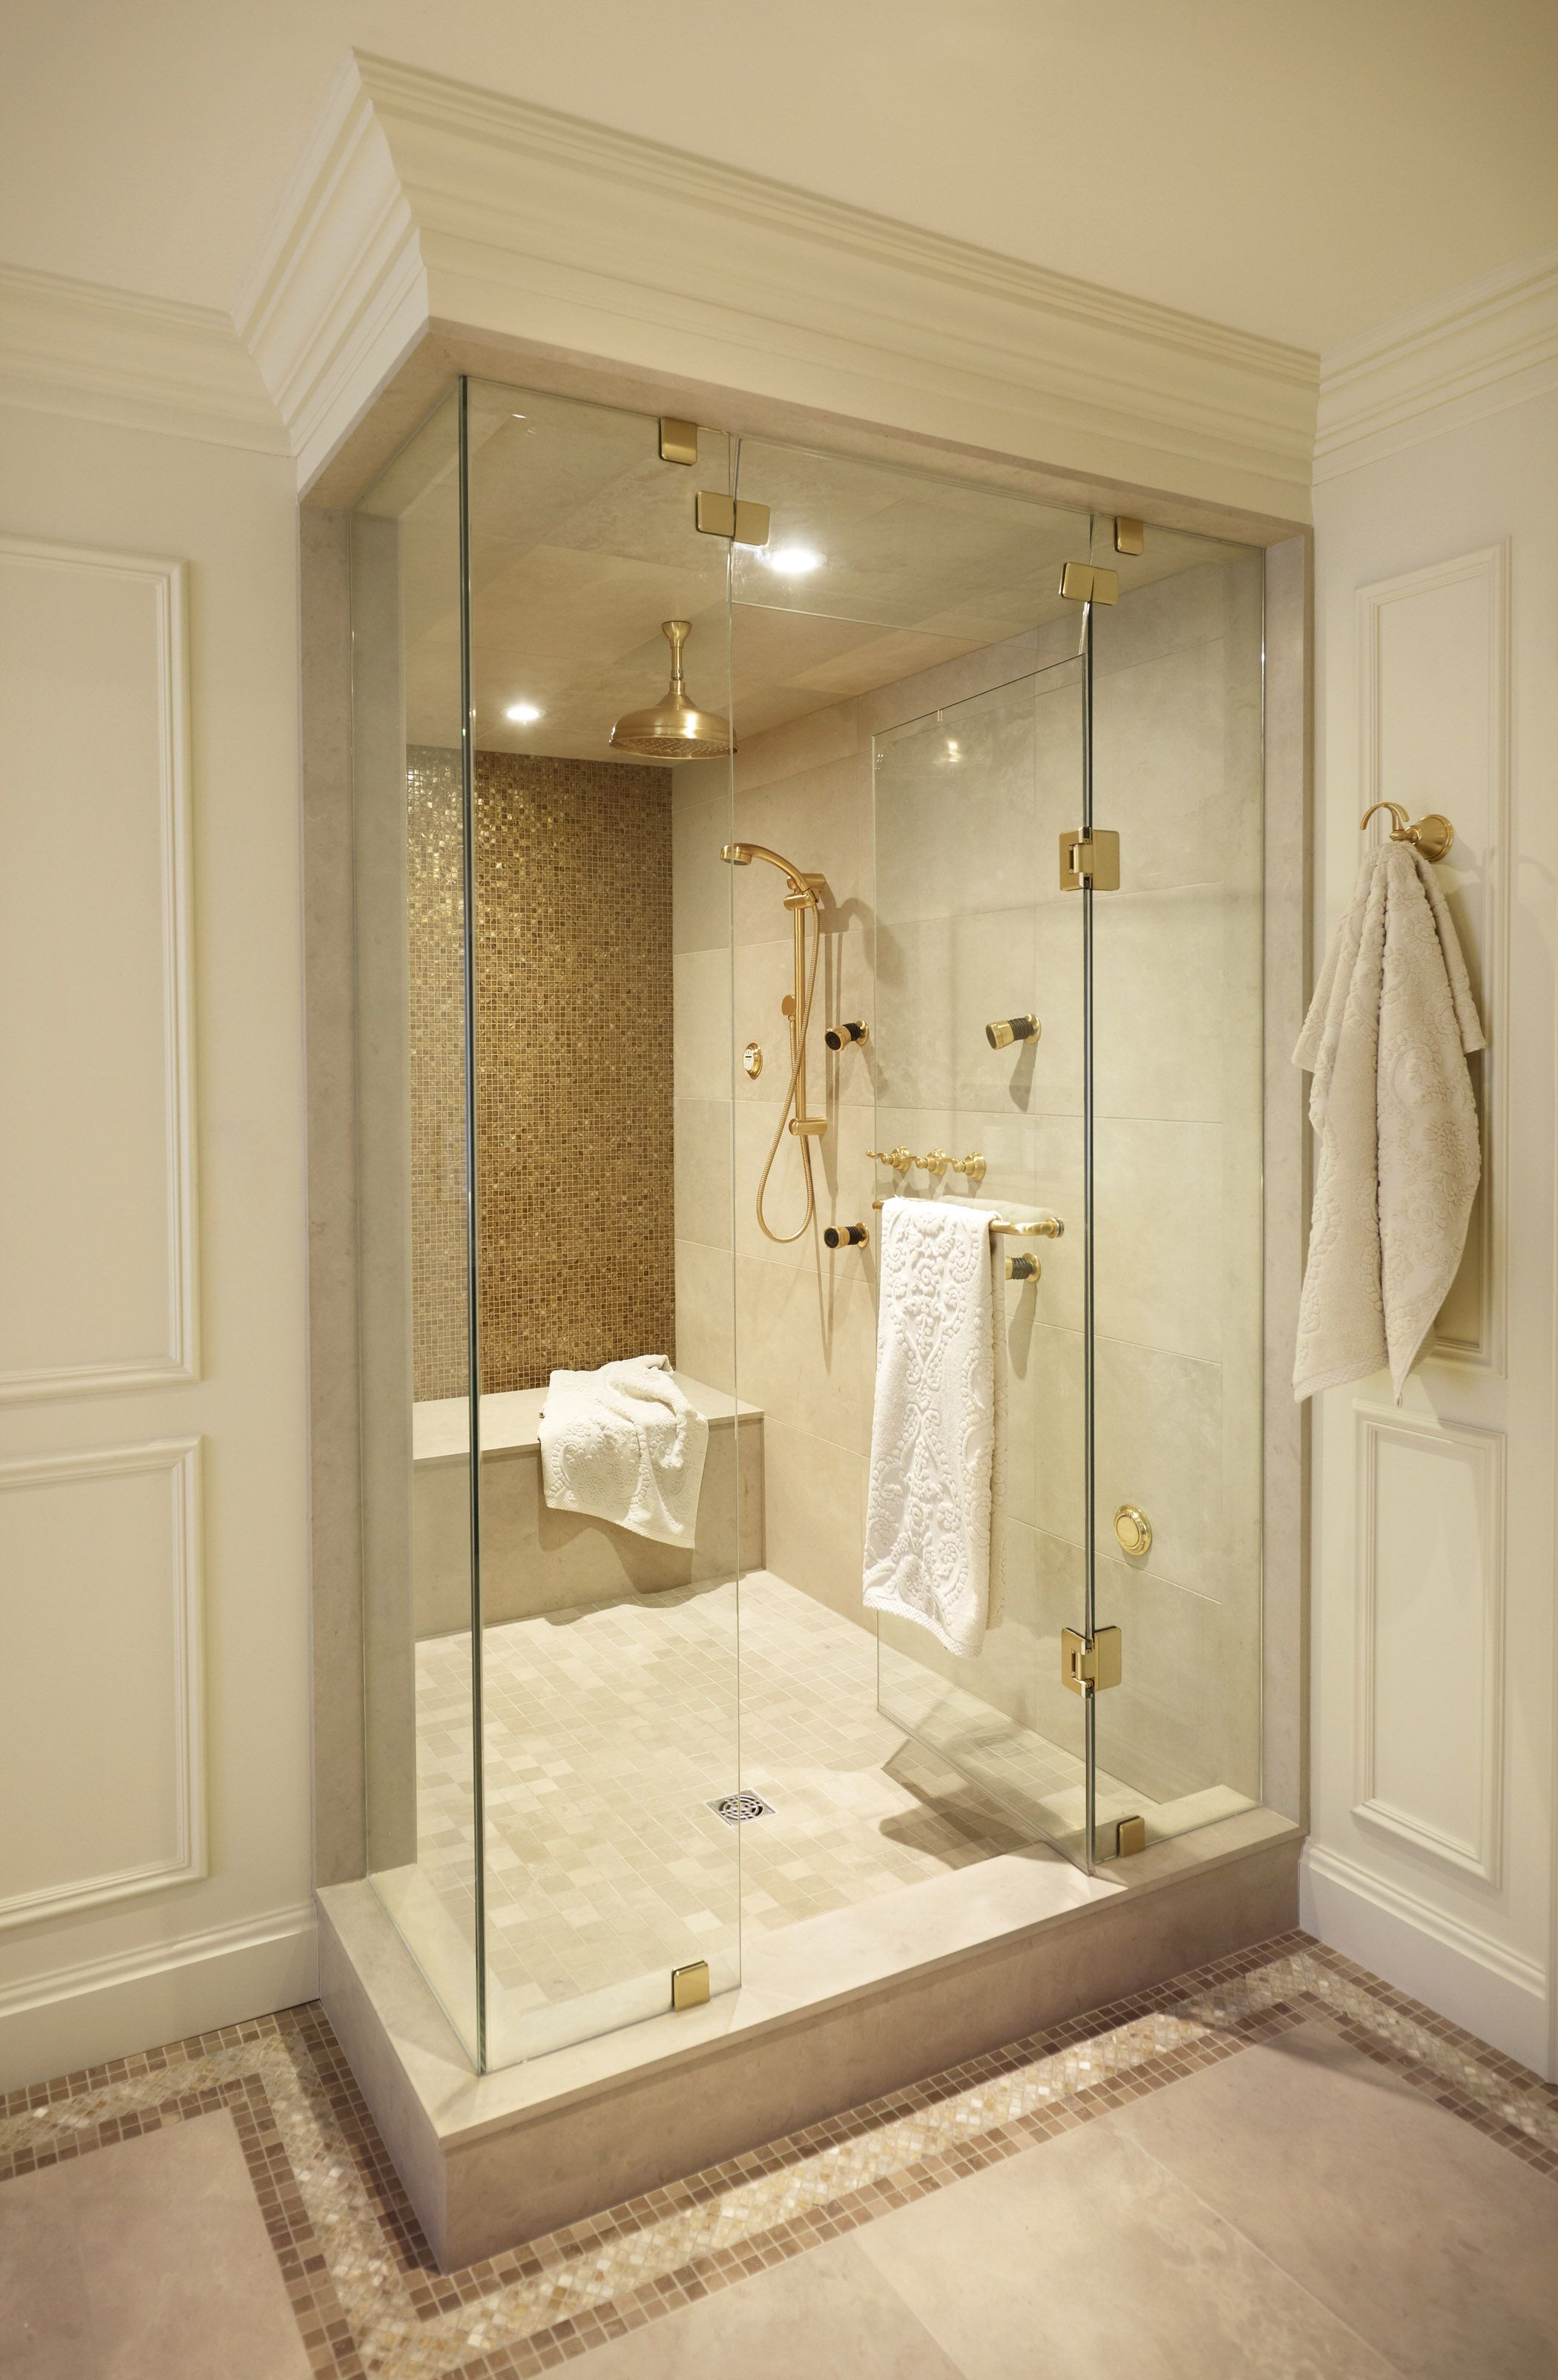 Ensuite Bathroom Regina interior design project: couple's retreat | regina sturrock design